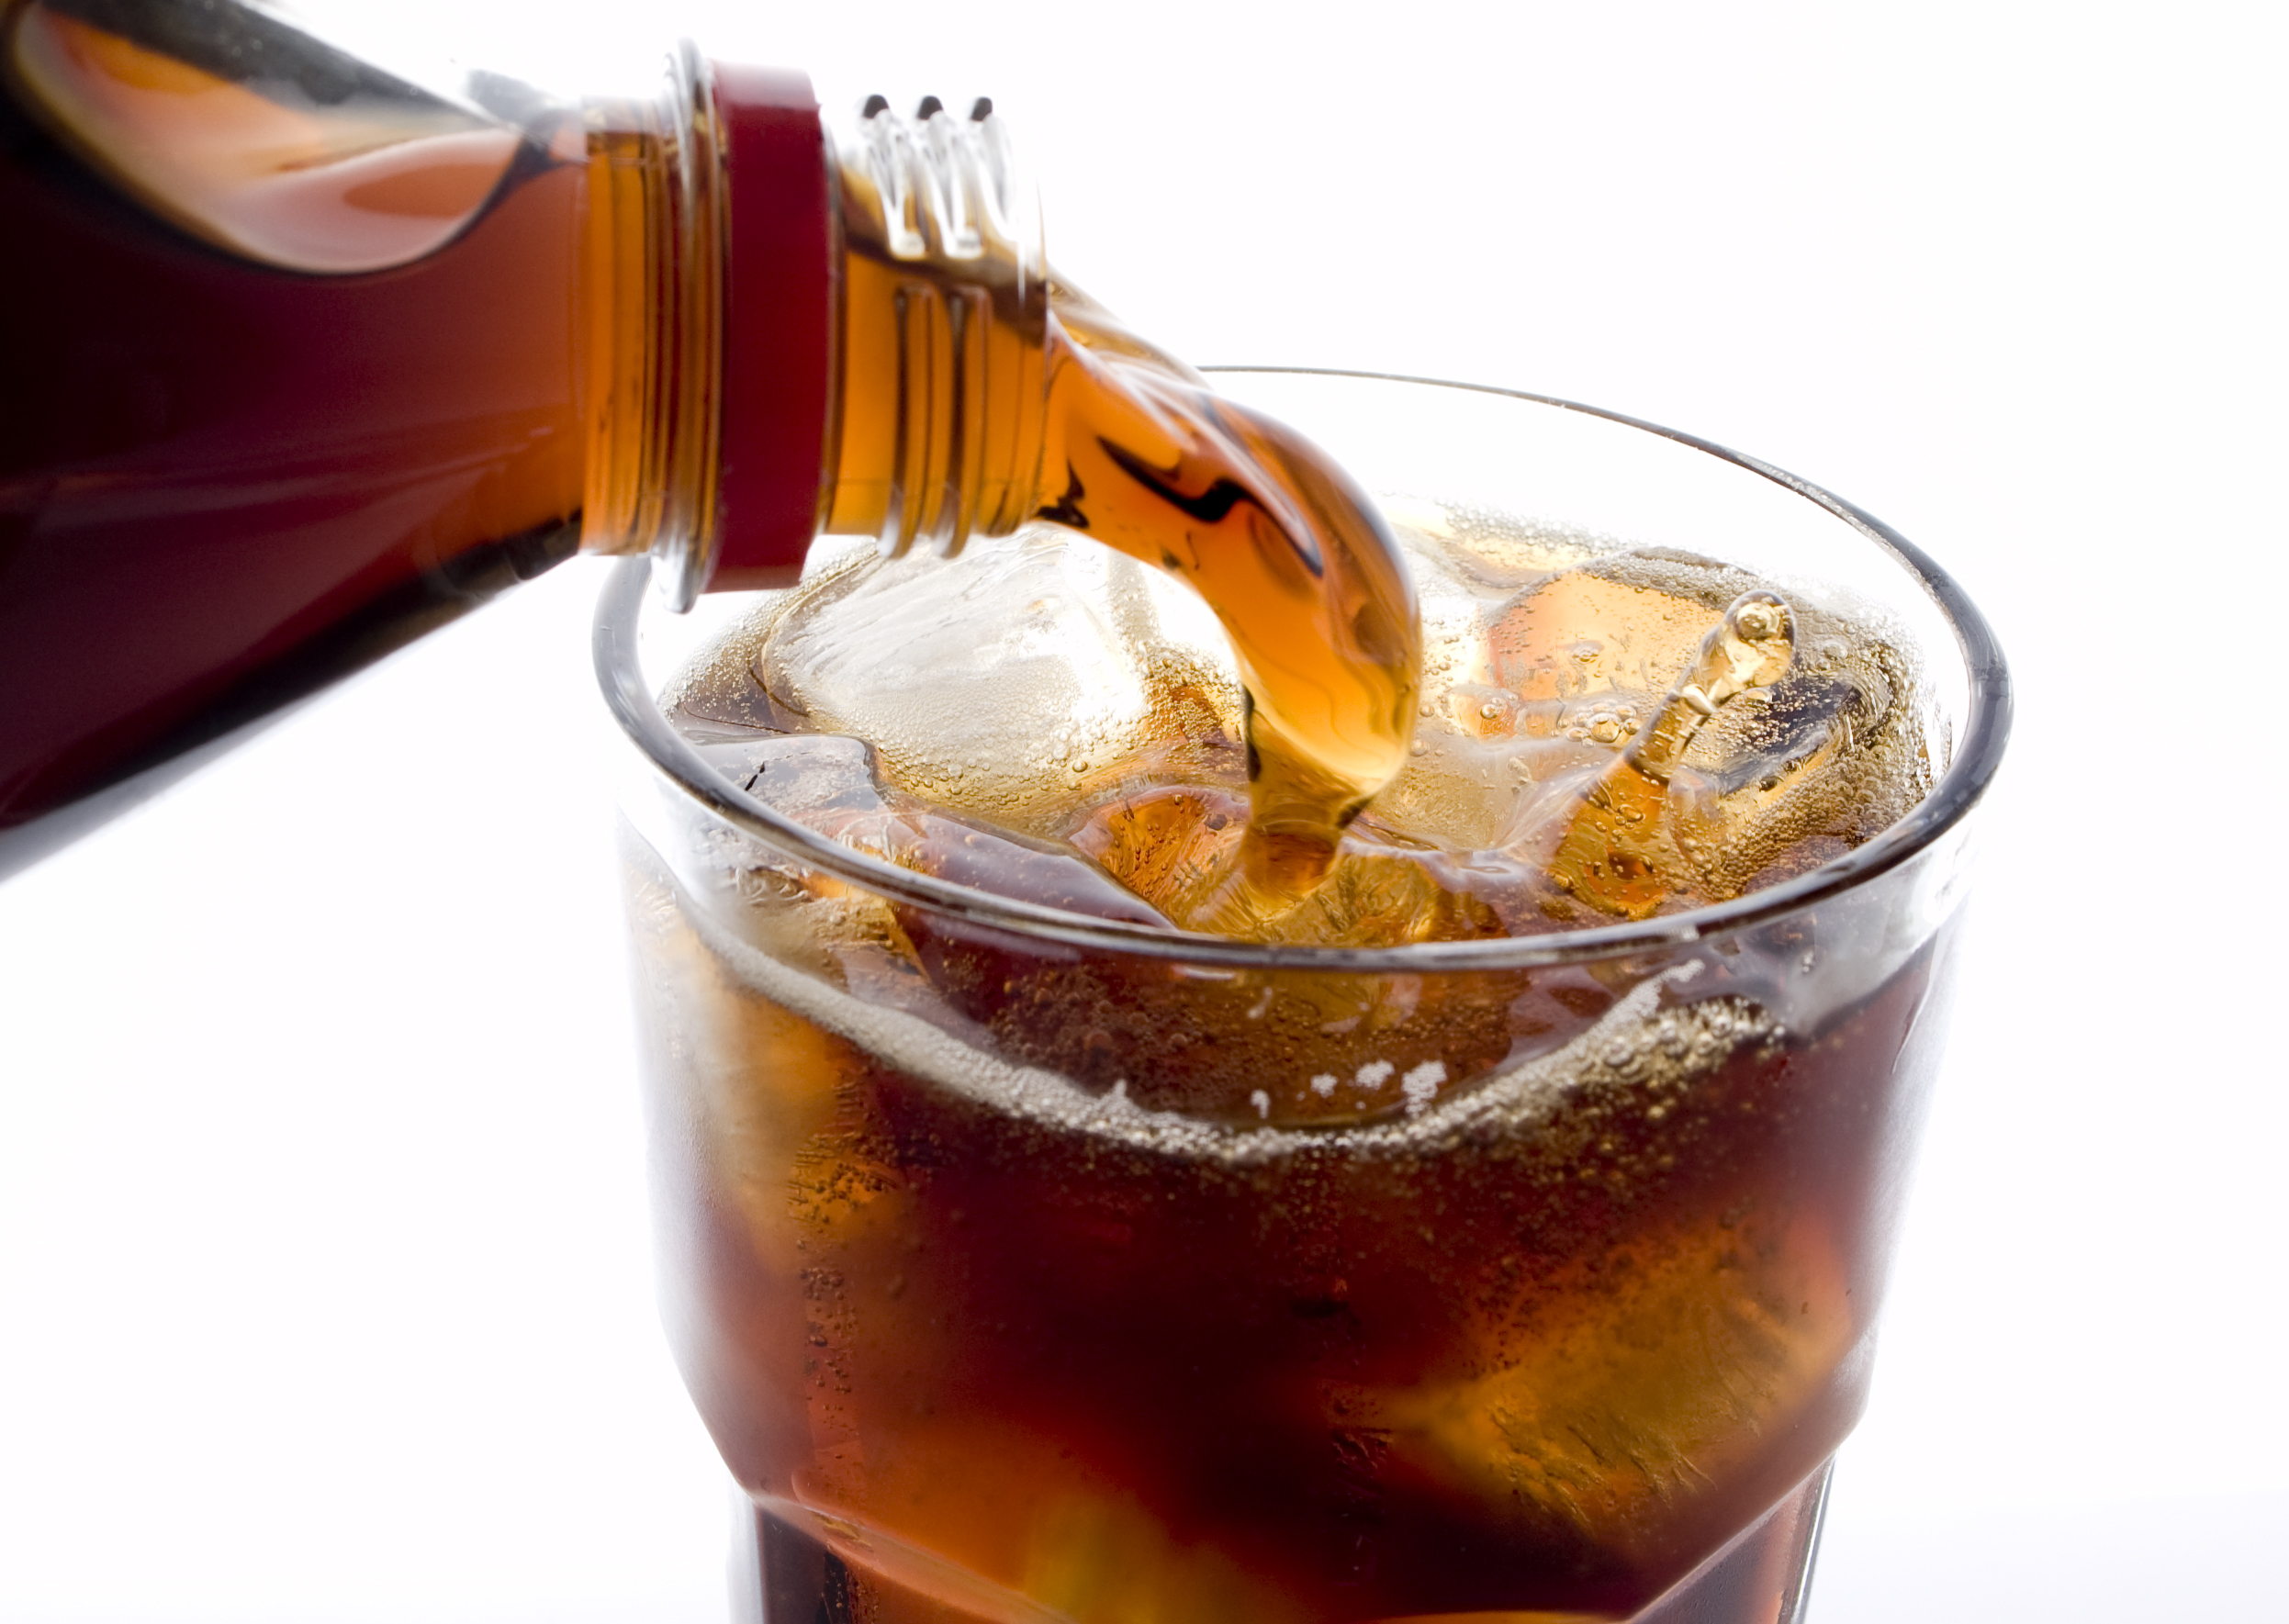 Sugary soda is correlated with many causes of death.  But so is diet soda, study finds. - The Washington Post